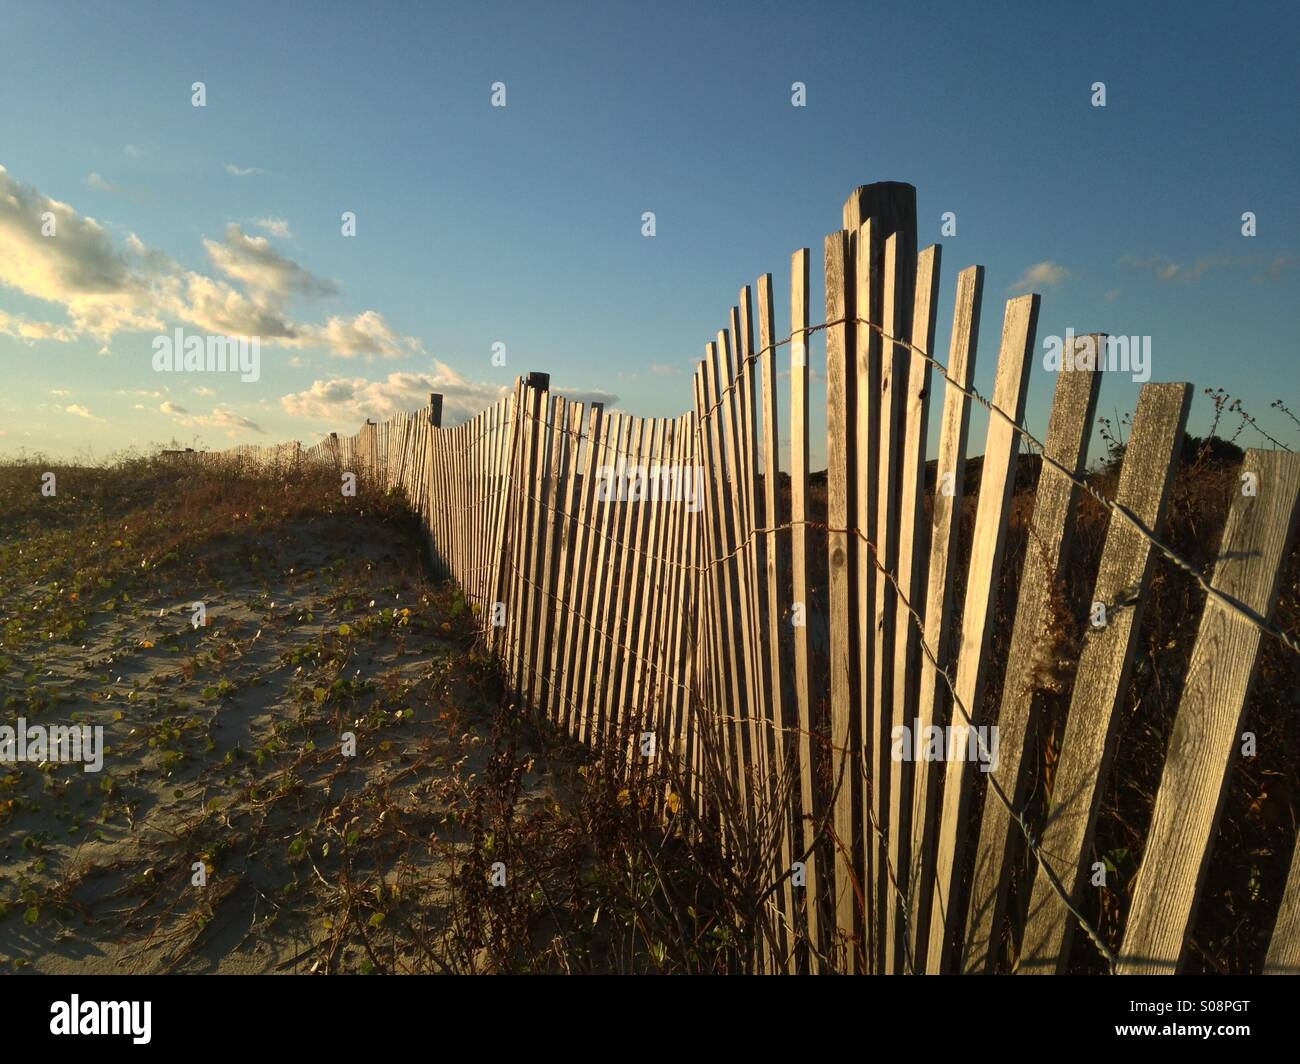 Late afternoon light illuminates a dune fence on Kiawah Island, South Carolina. - Stock Image